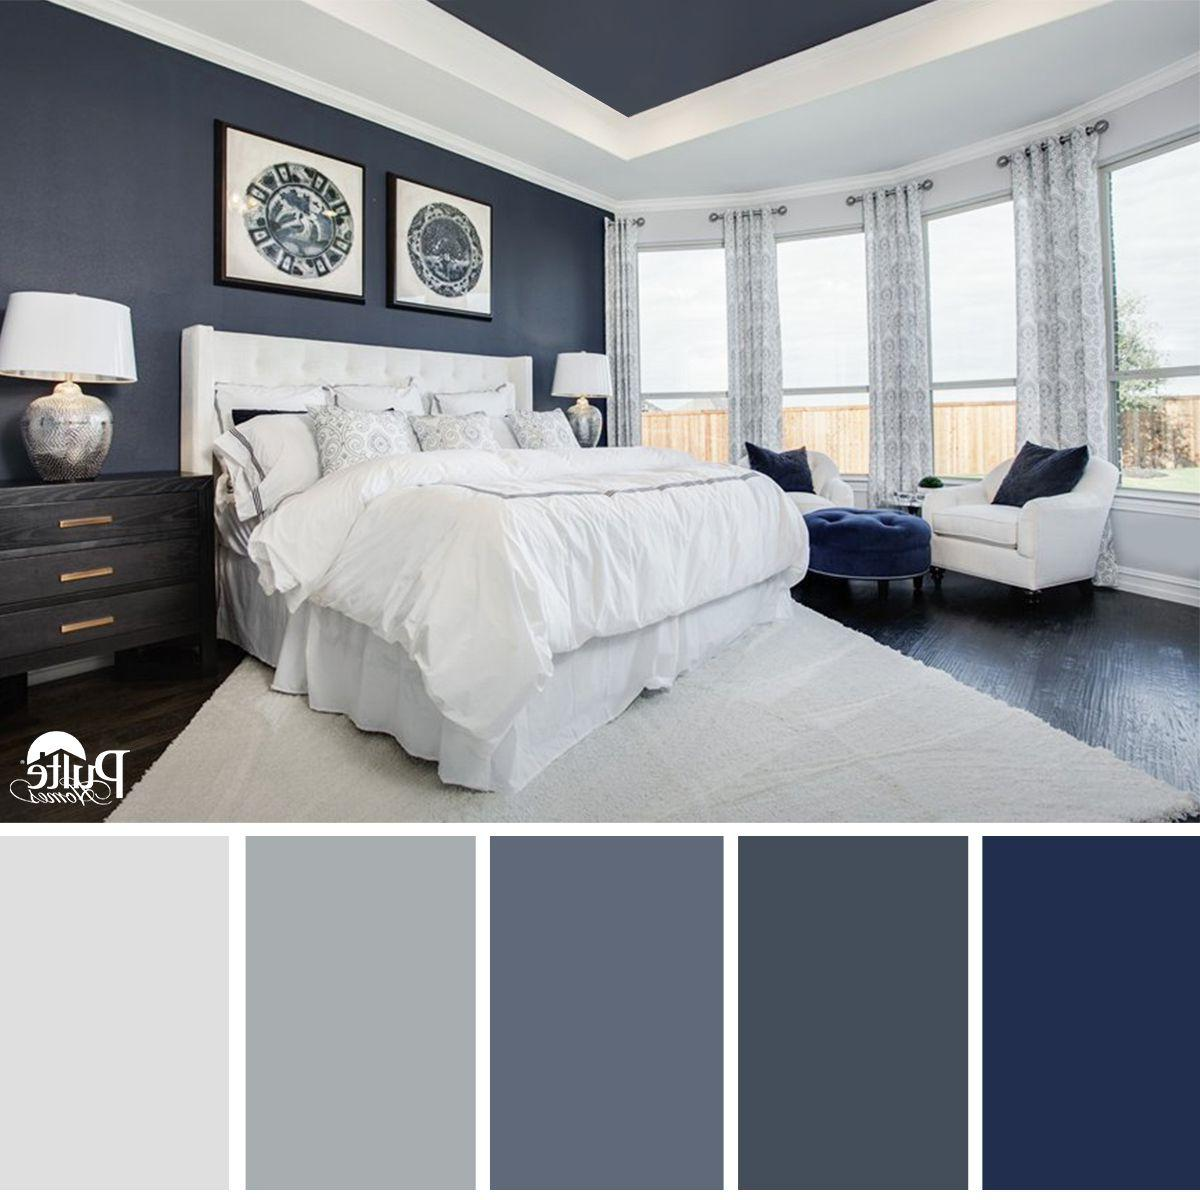 Bedroom Colour Combination Ideas Bedroom Ideas With Tapestry Guest Bedroom Curtains Large Bedroom Color Ideas: Bedroom Color Combination Ideas